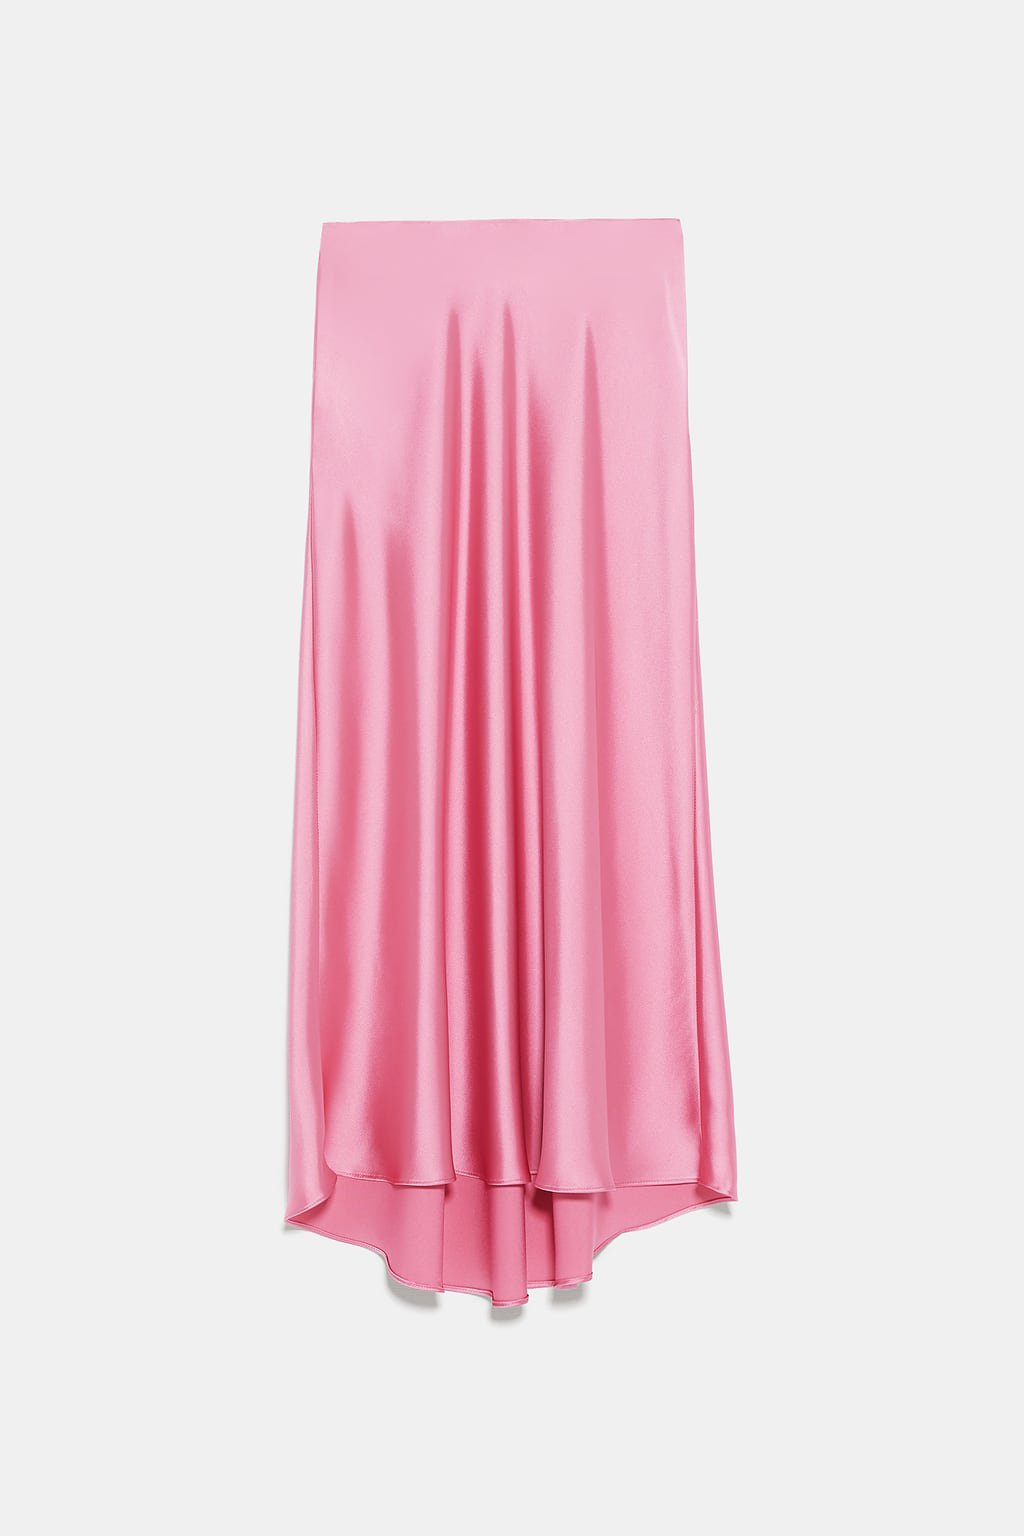 SATIN SKIRT - View All-SKIRTS-WOMAN | ZARA United States pink